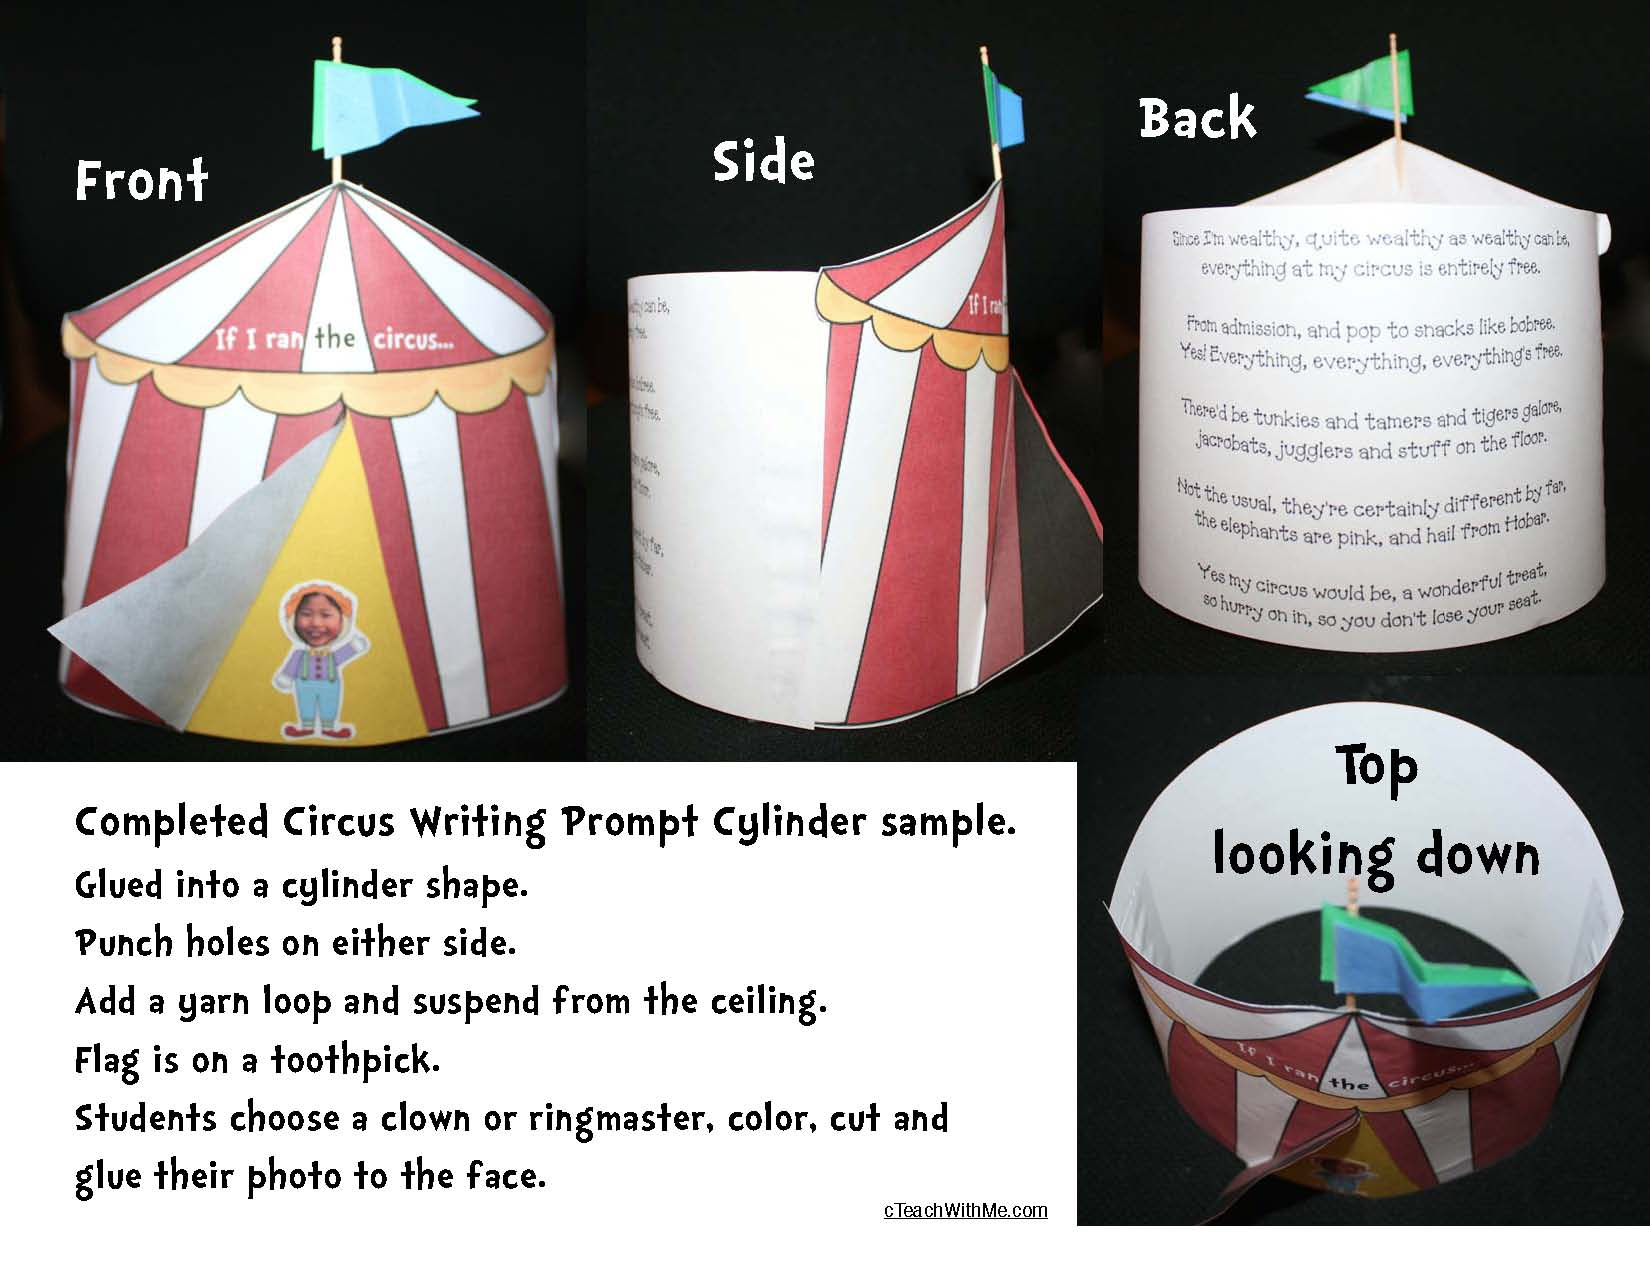 if i ran the circus activities, circus activities, circus tent template, on beyond zebra activities, dr. seuss's abc book activities, seuss writing prompts, seuss class made books, seuss alphabet book, seuss alphabet cards, writing prompts for march, march writing prompts, writing prompts for dr seuss, dr seuss activities, common core seuss